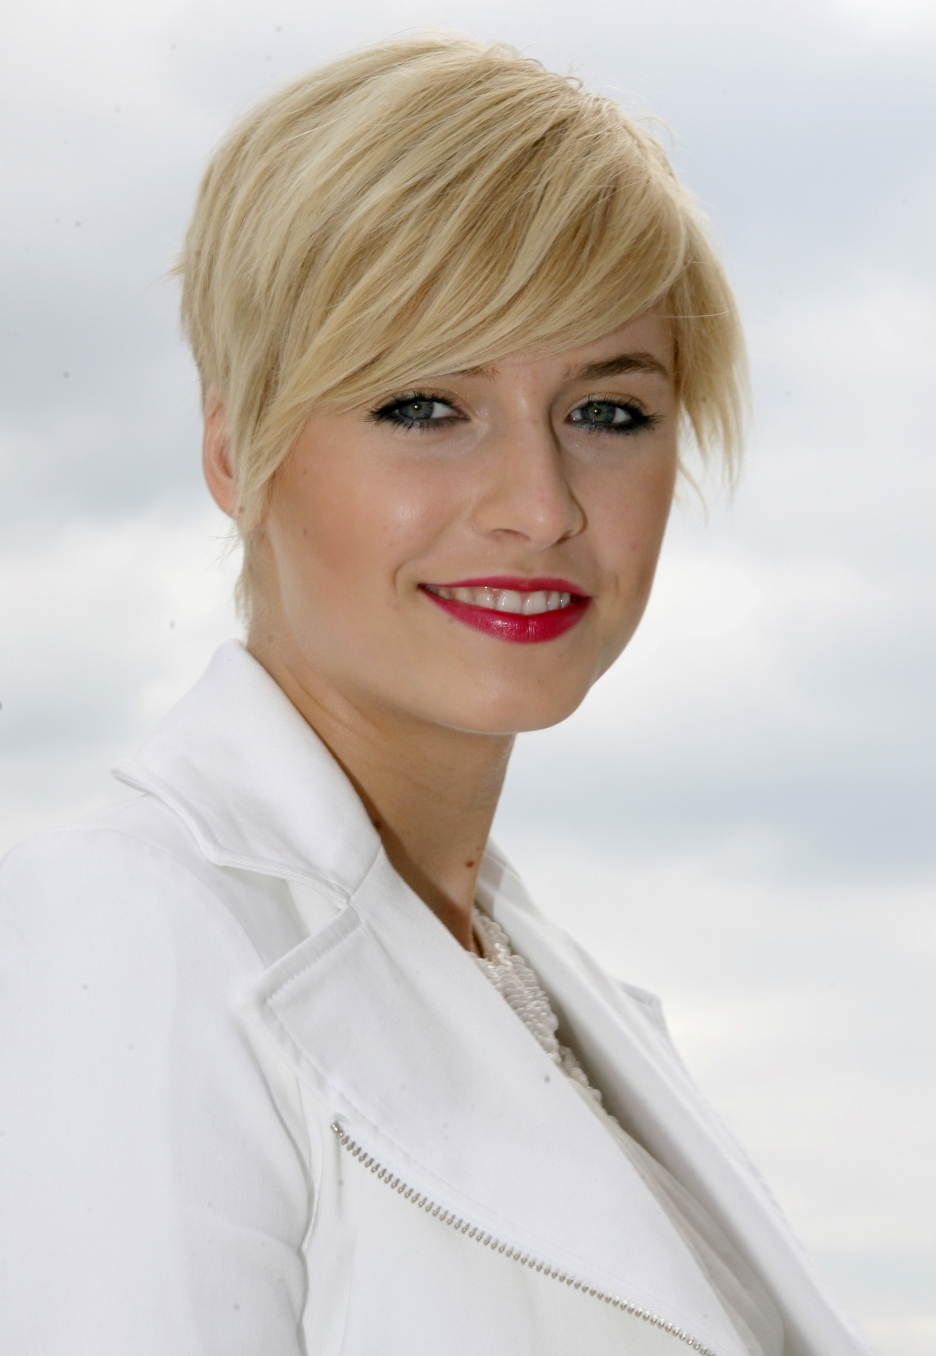 Fashion Of Hair Style Lena Gercke Blonde Hairstyle Emo